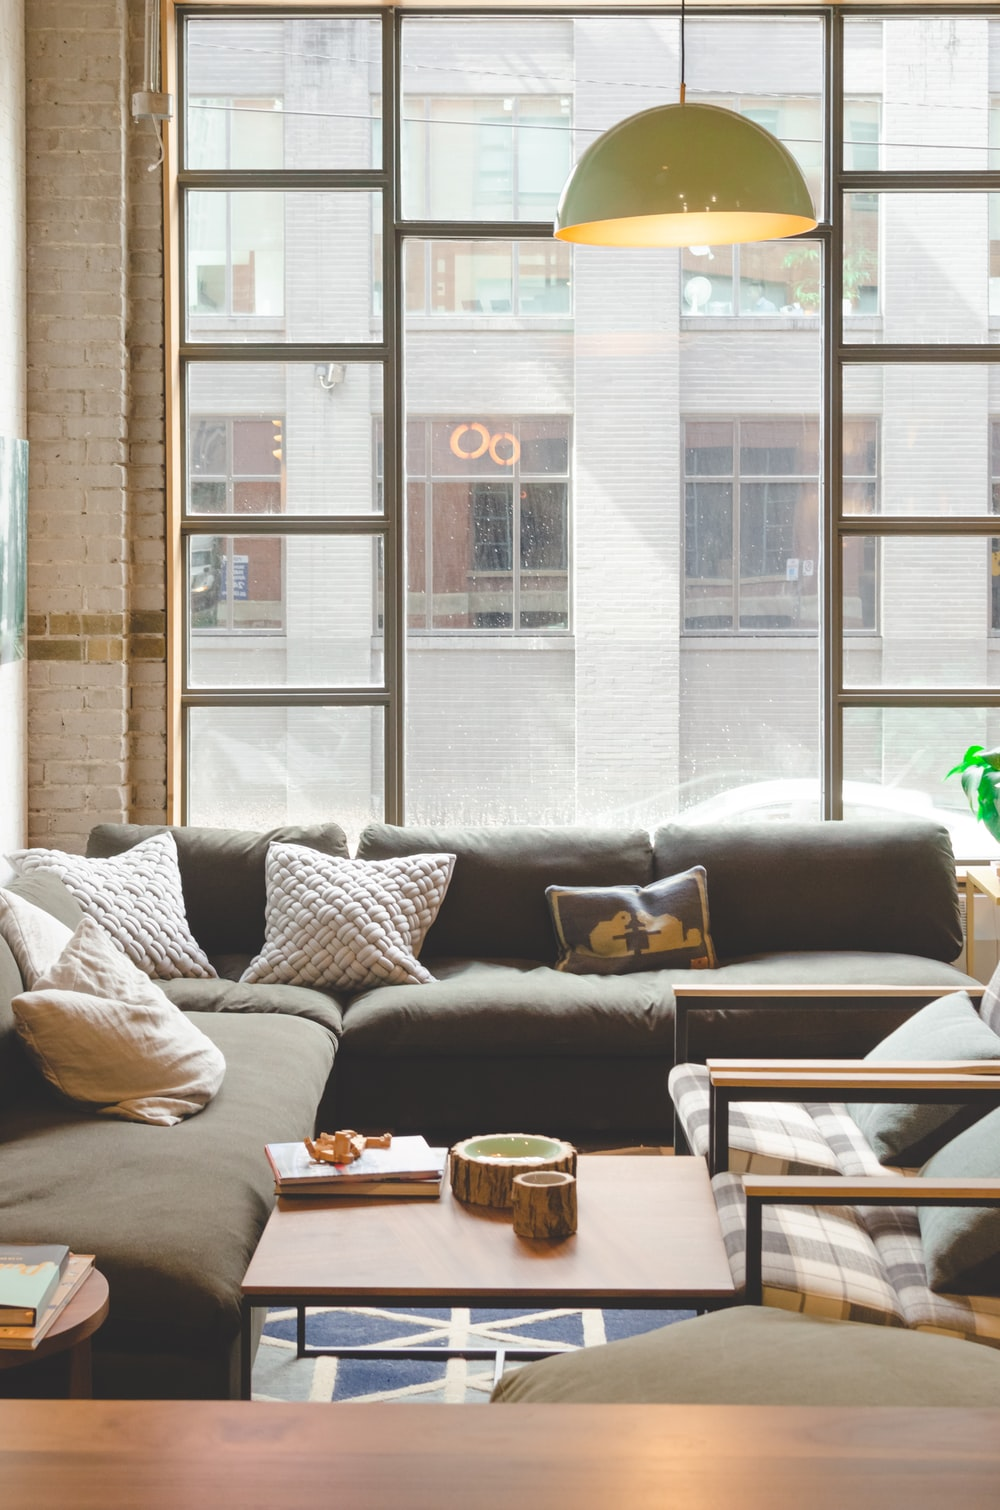 throw pillows on sectional sofa inside building with pendant lamp turned on